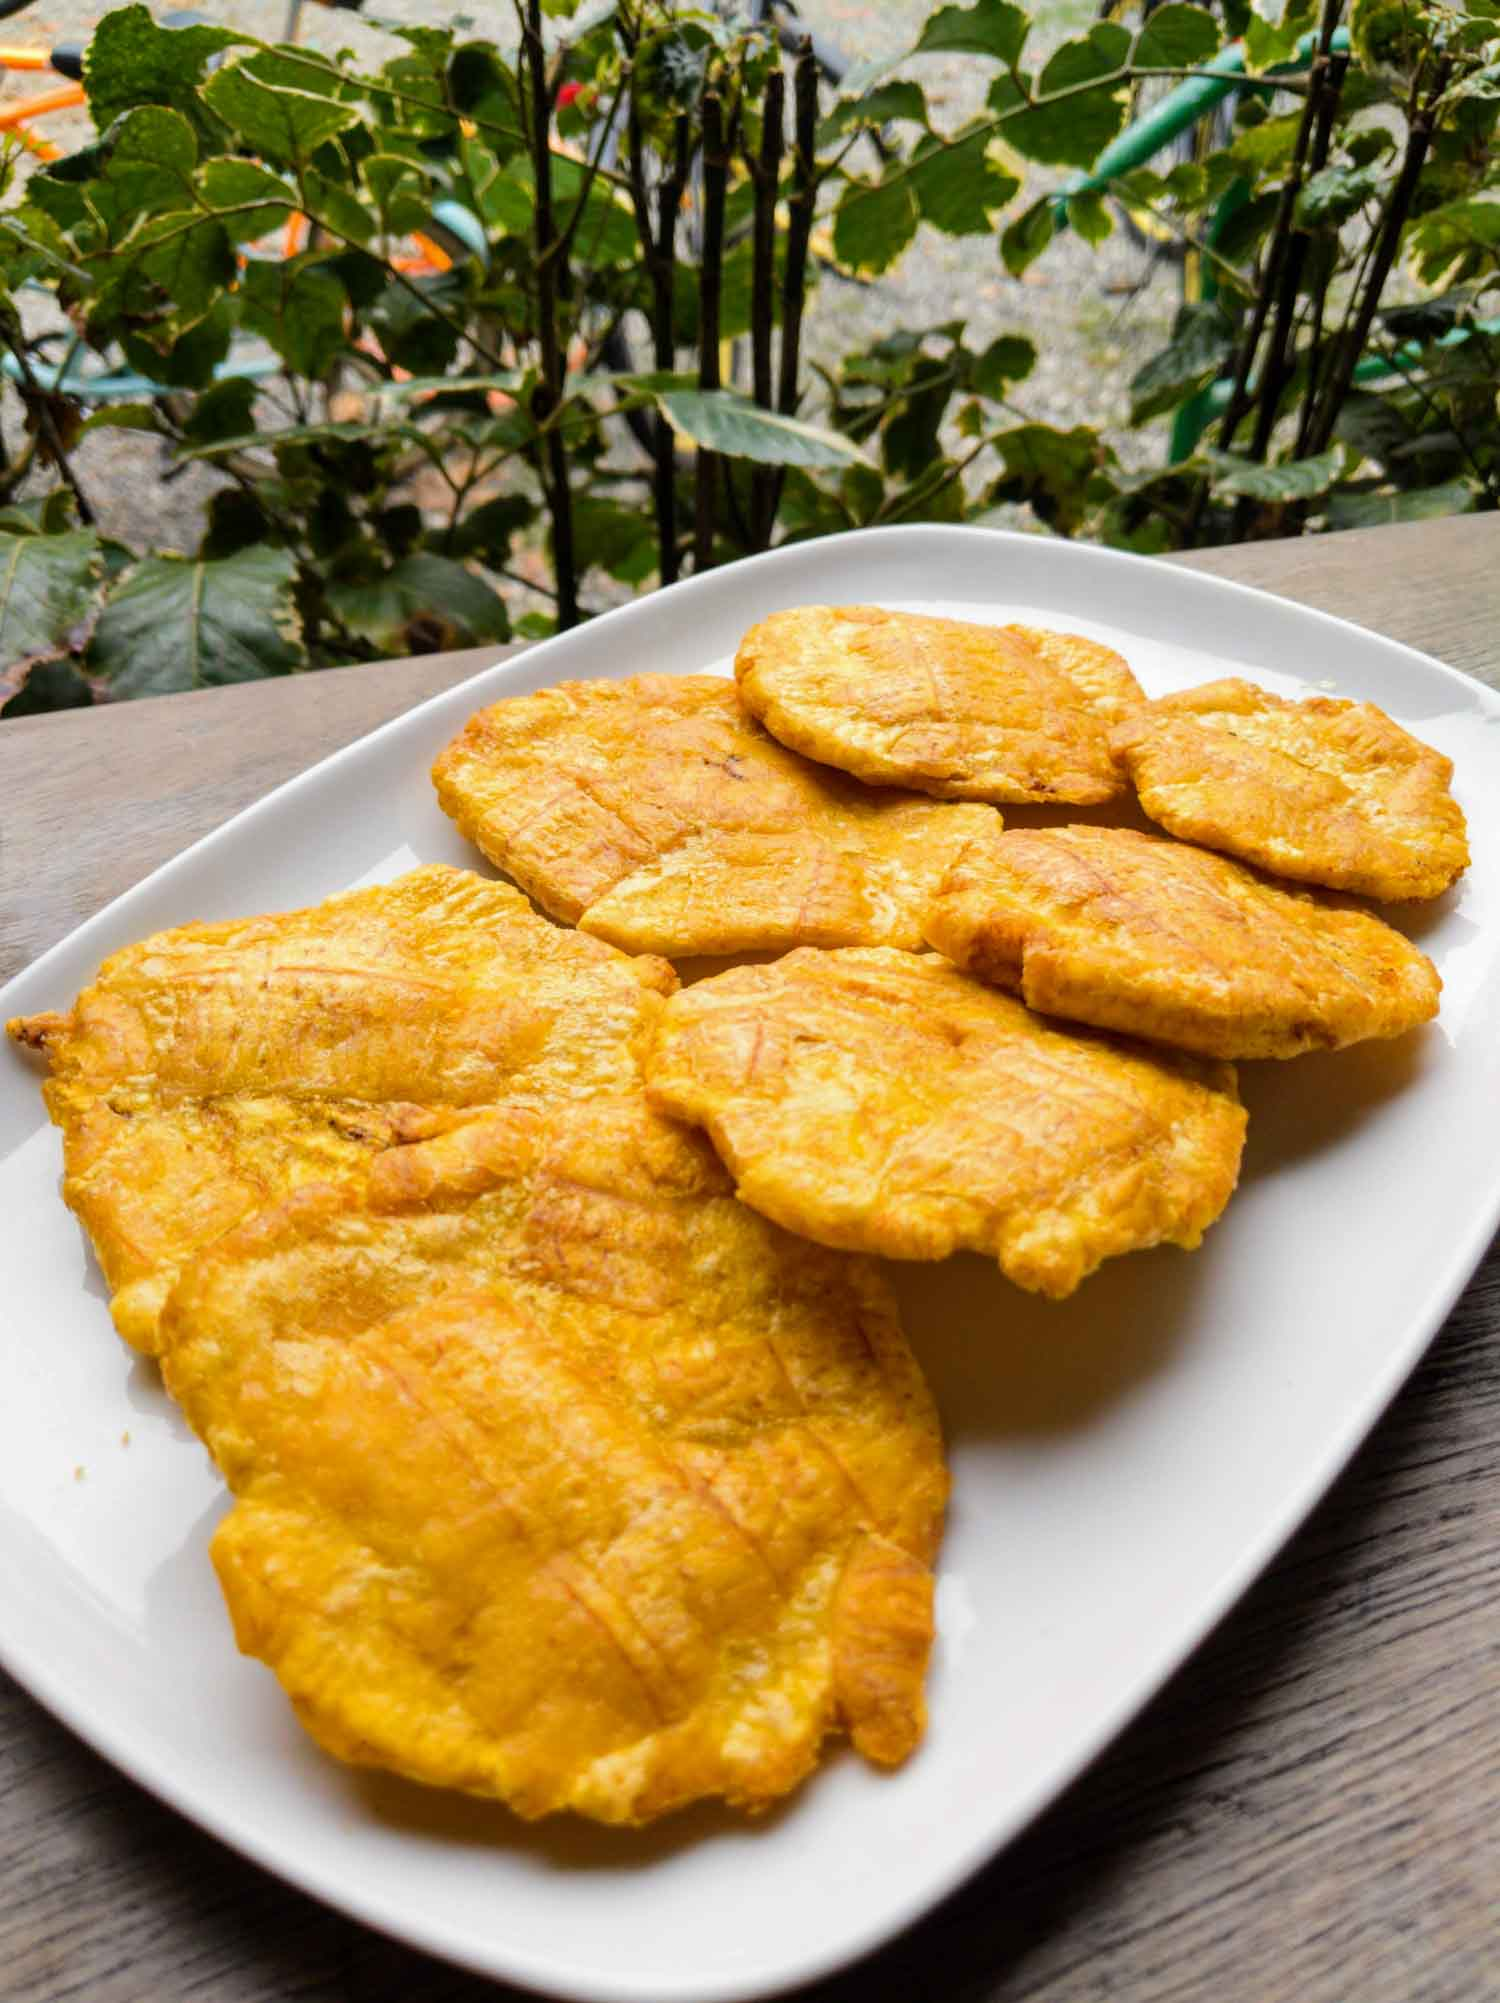 Patacones also known as tostones or fried green plantains in Costa Rica